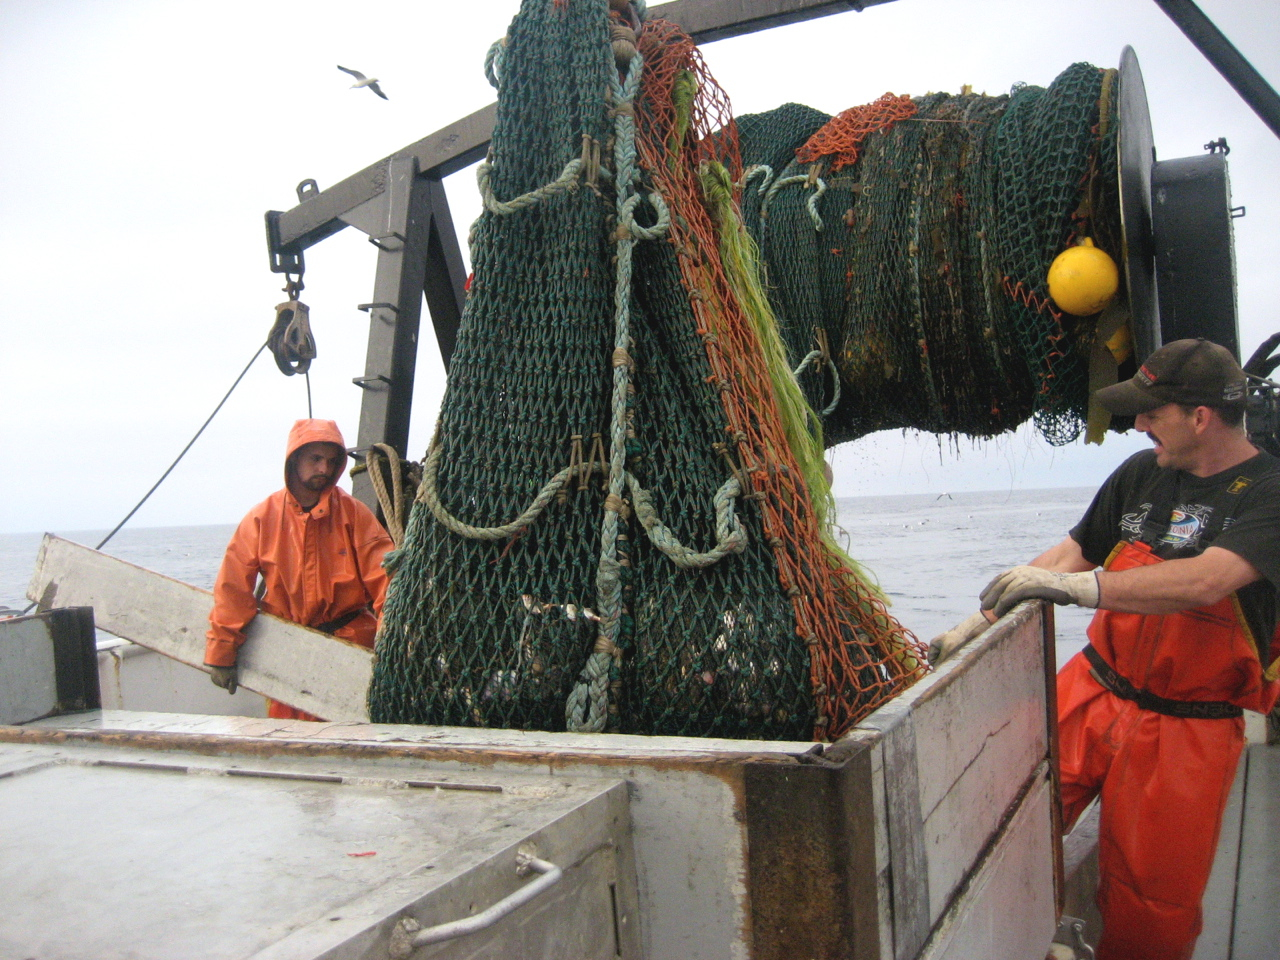 Traditional trawling methods